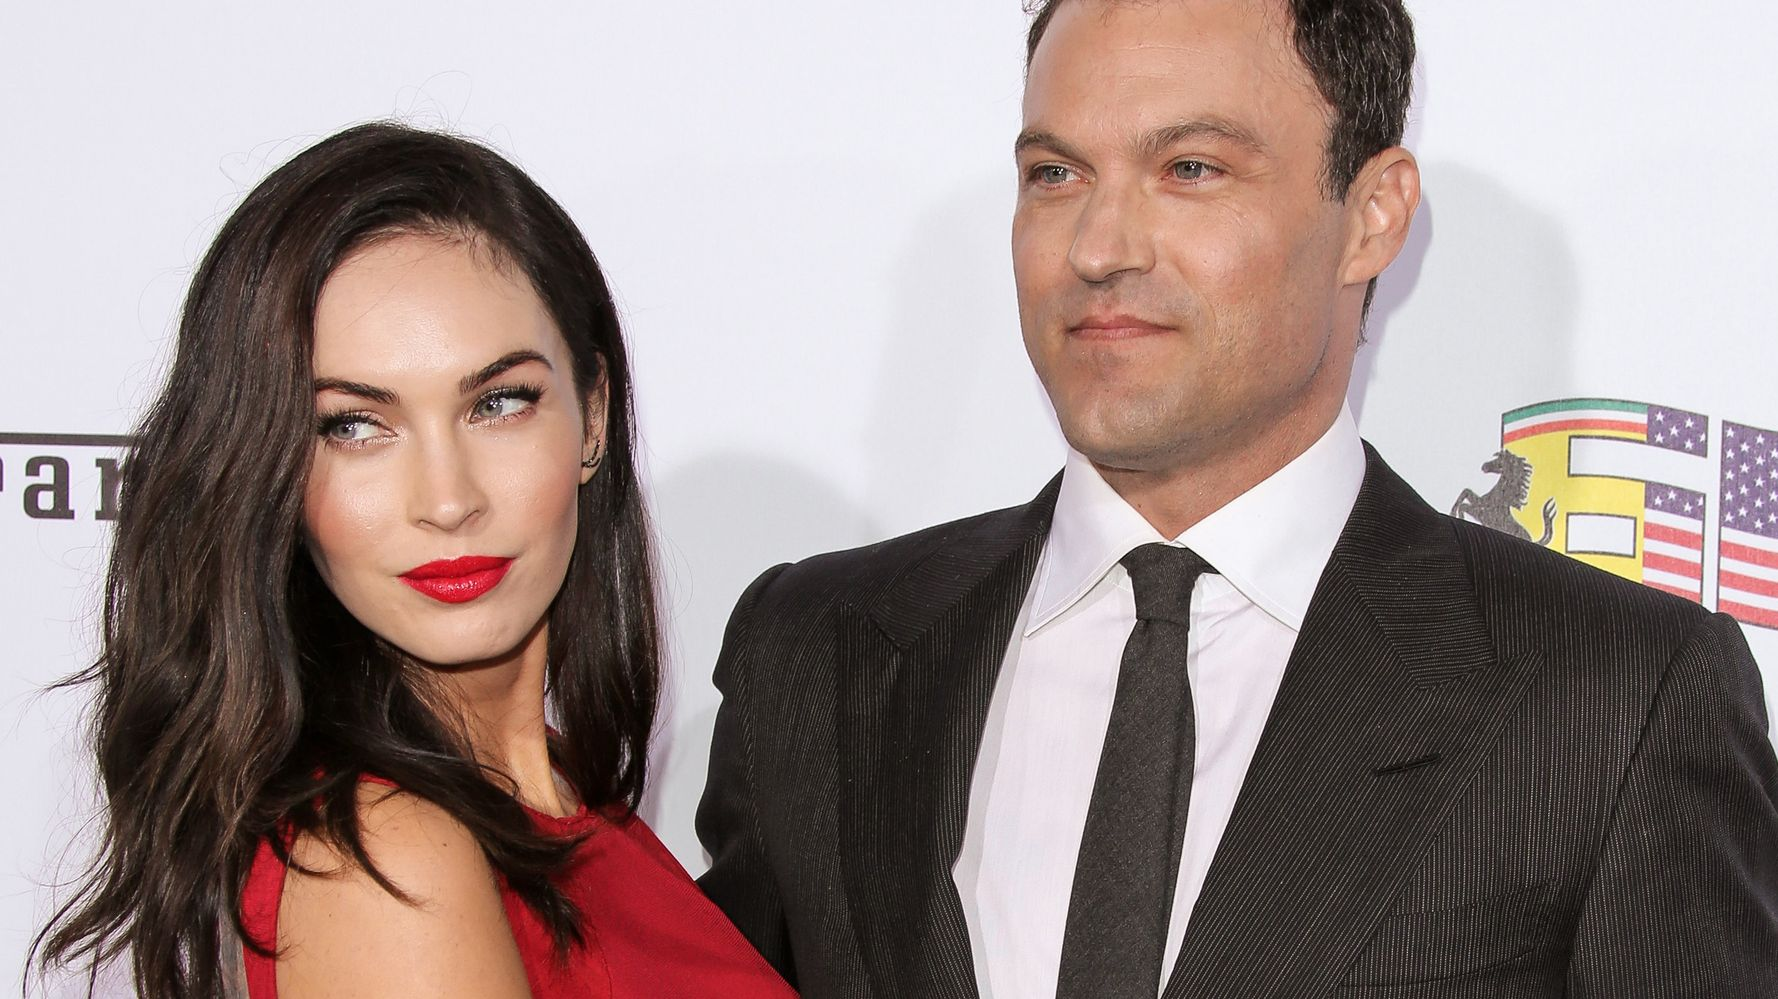 This Is The 'Secret' To Brian Austin Green And Megan Fox's Marriage